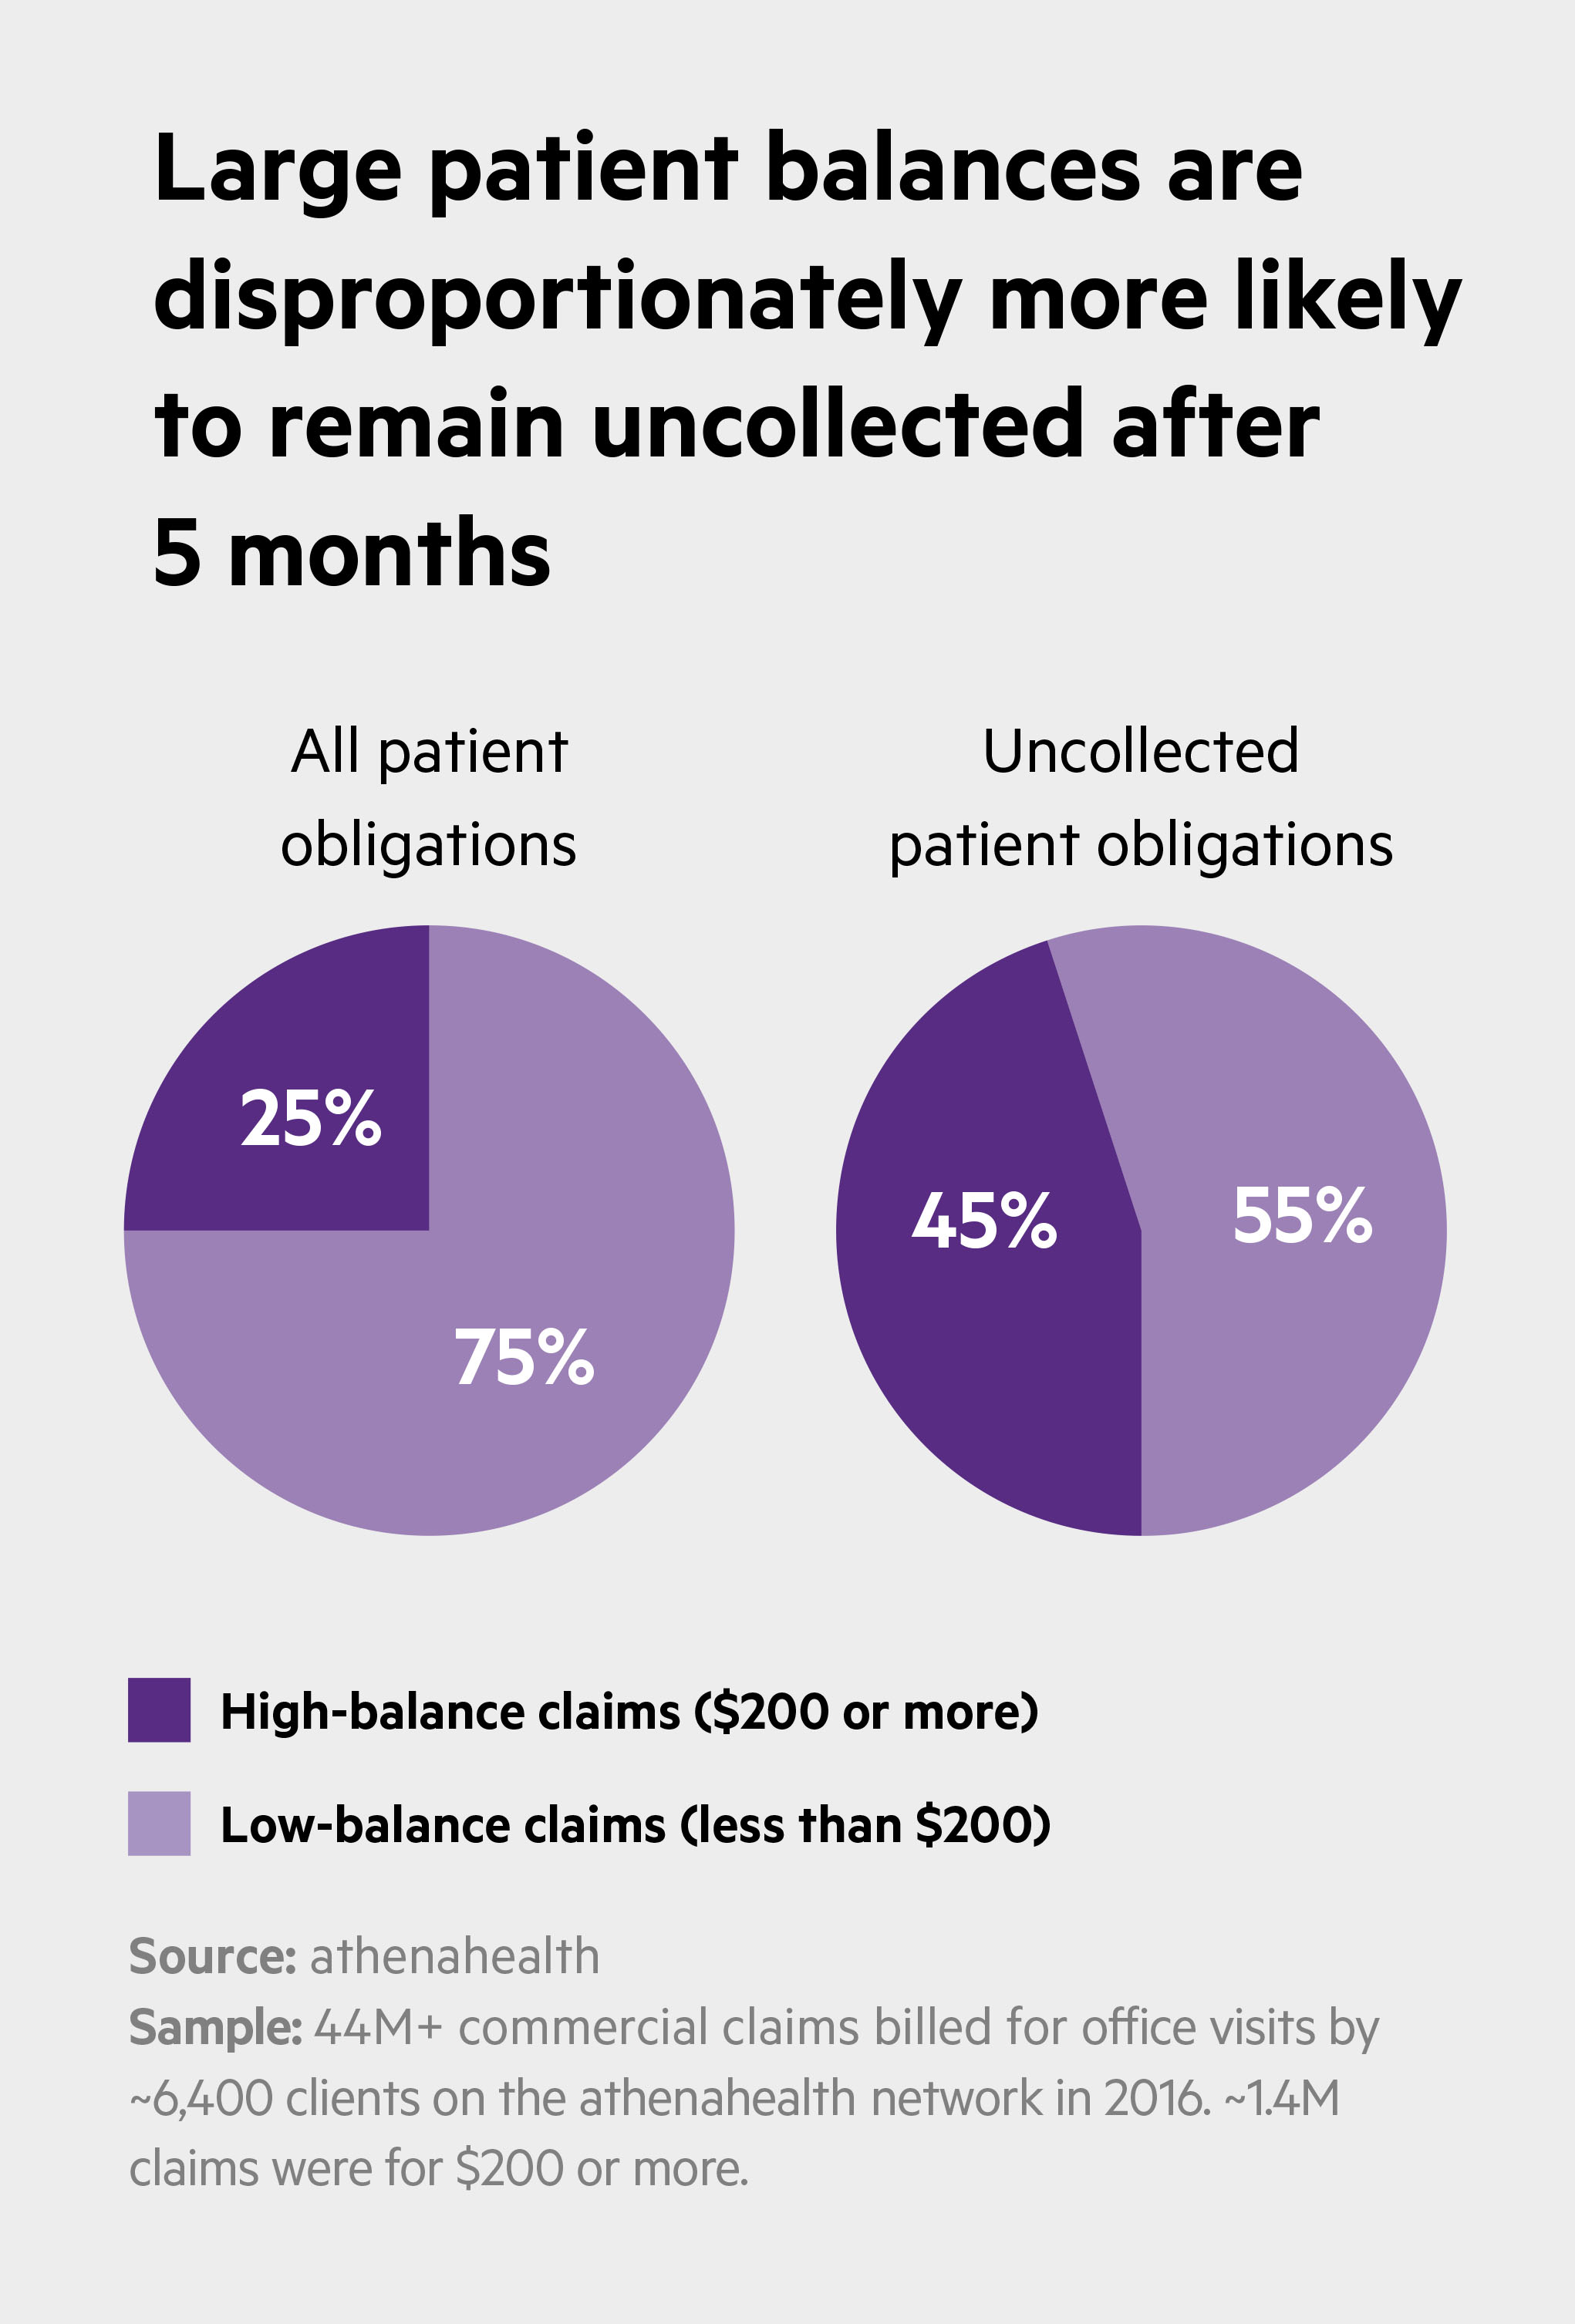 Large patient balances